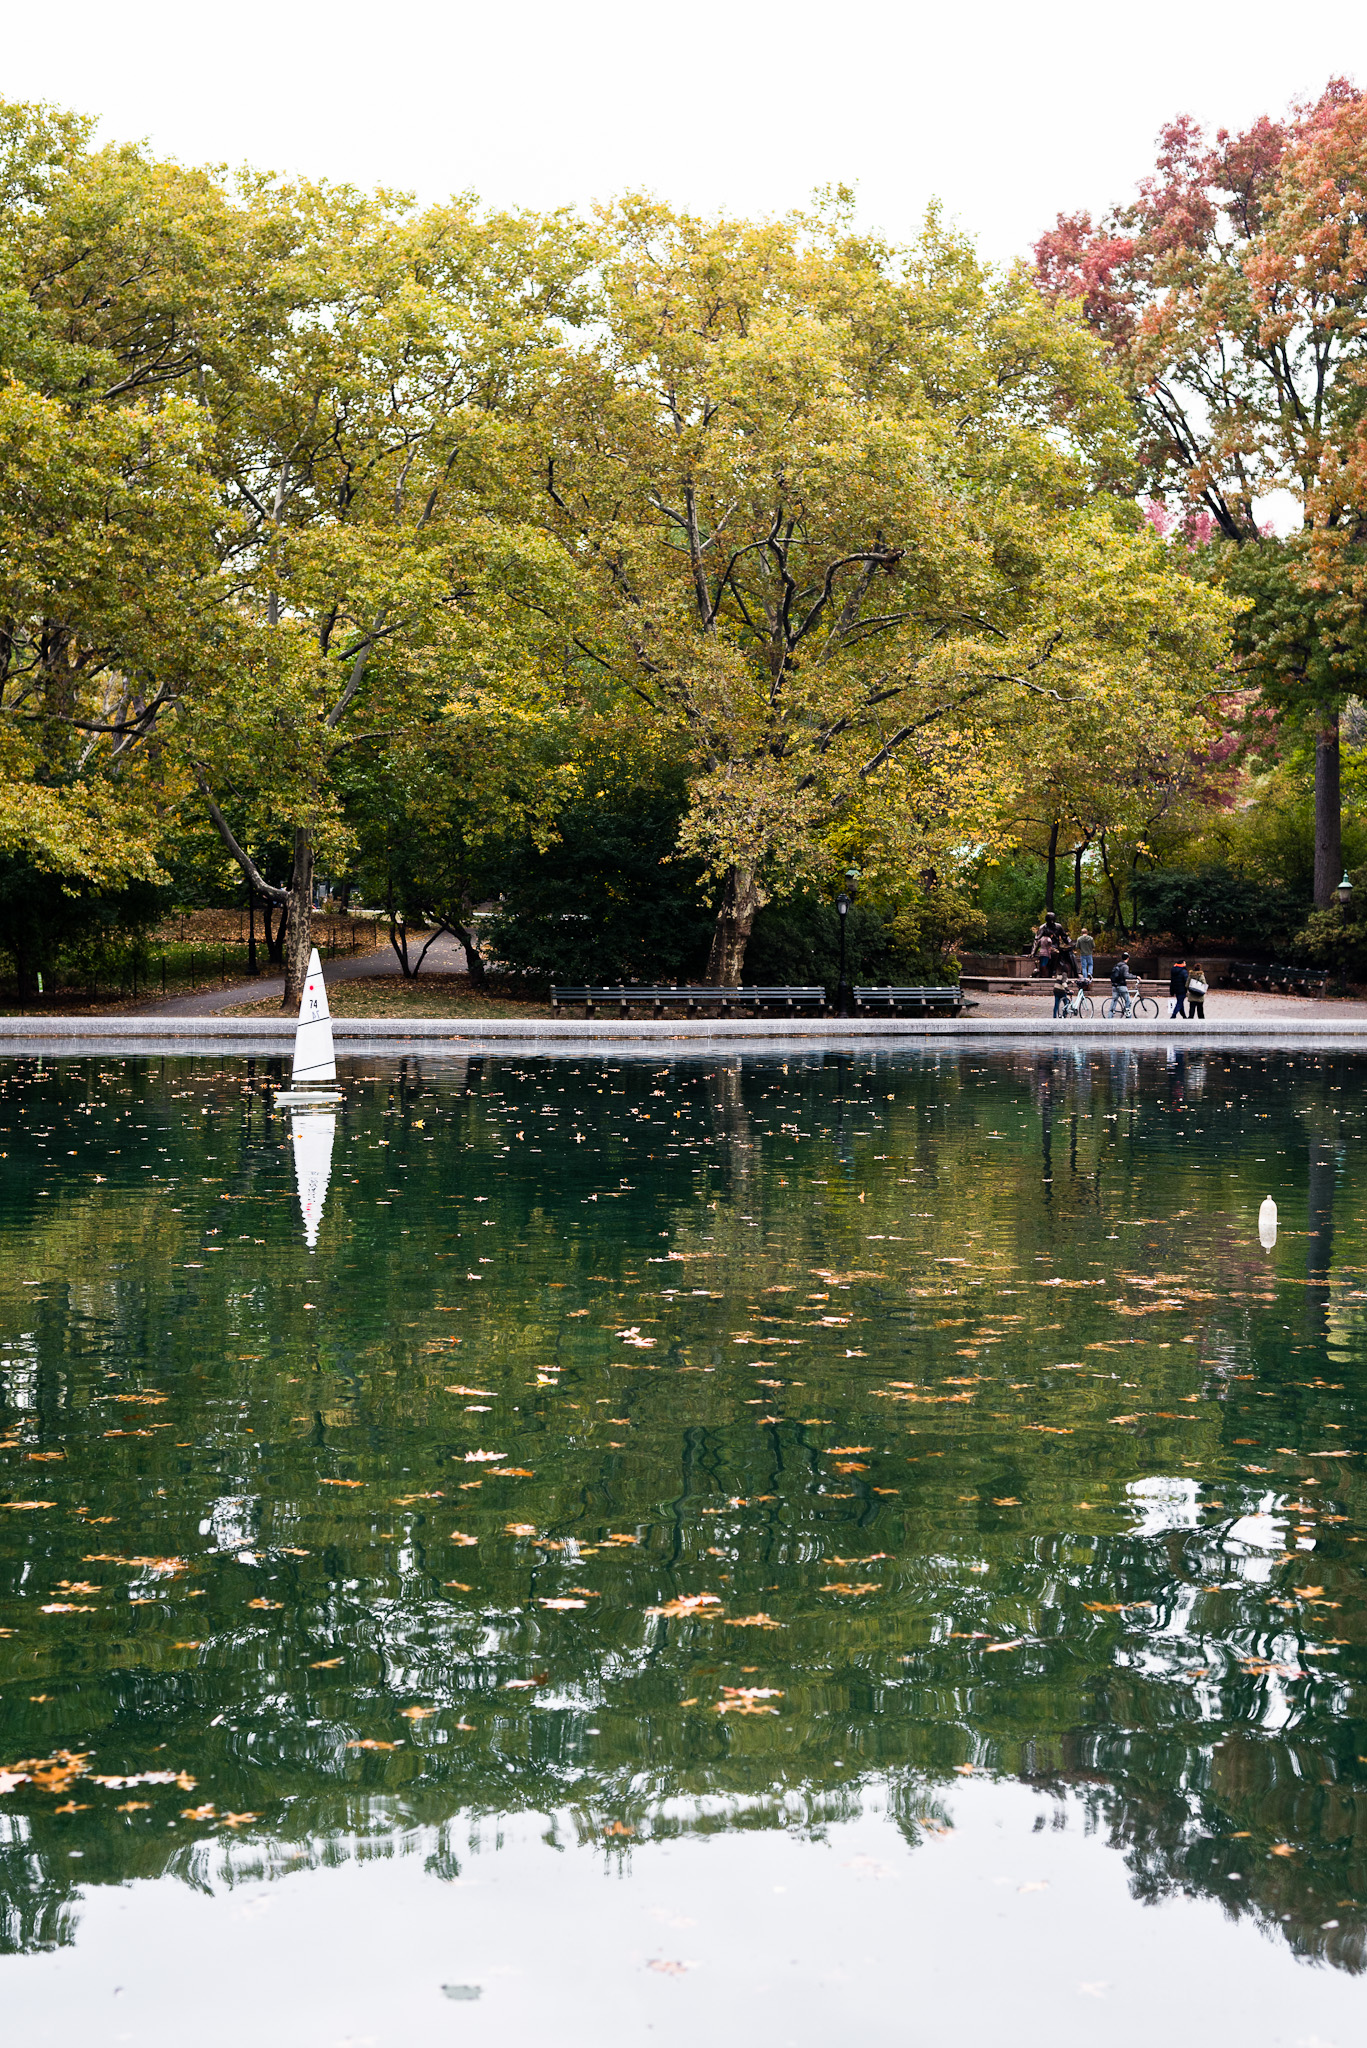 Central Park in Autumn - Boat Pond - flavorsoflight